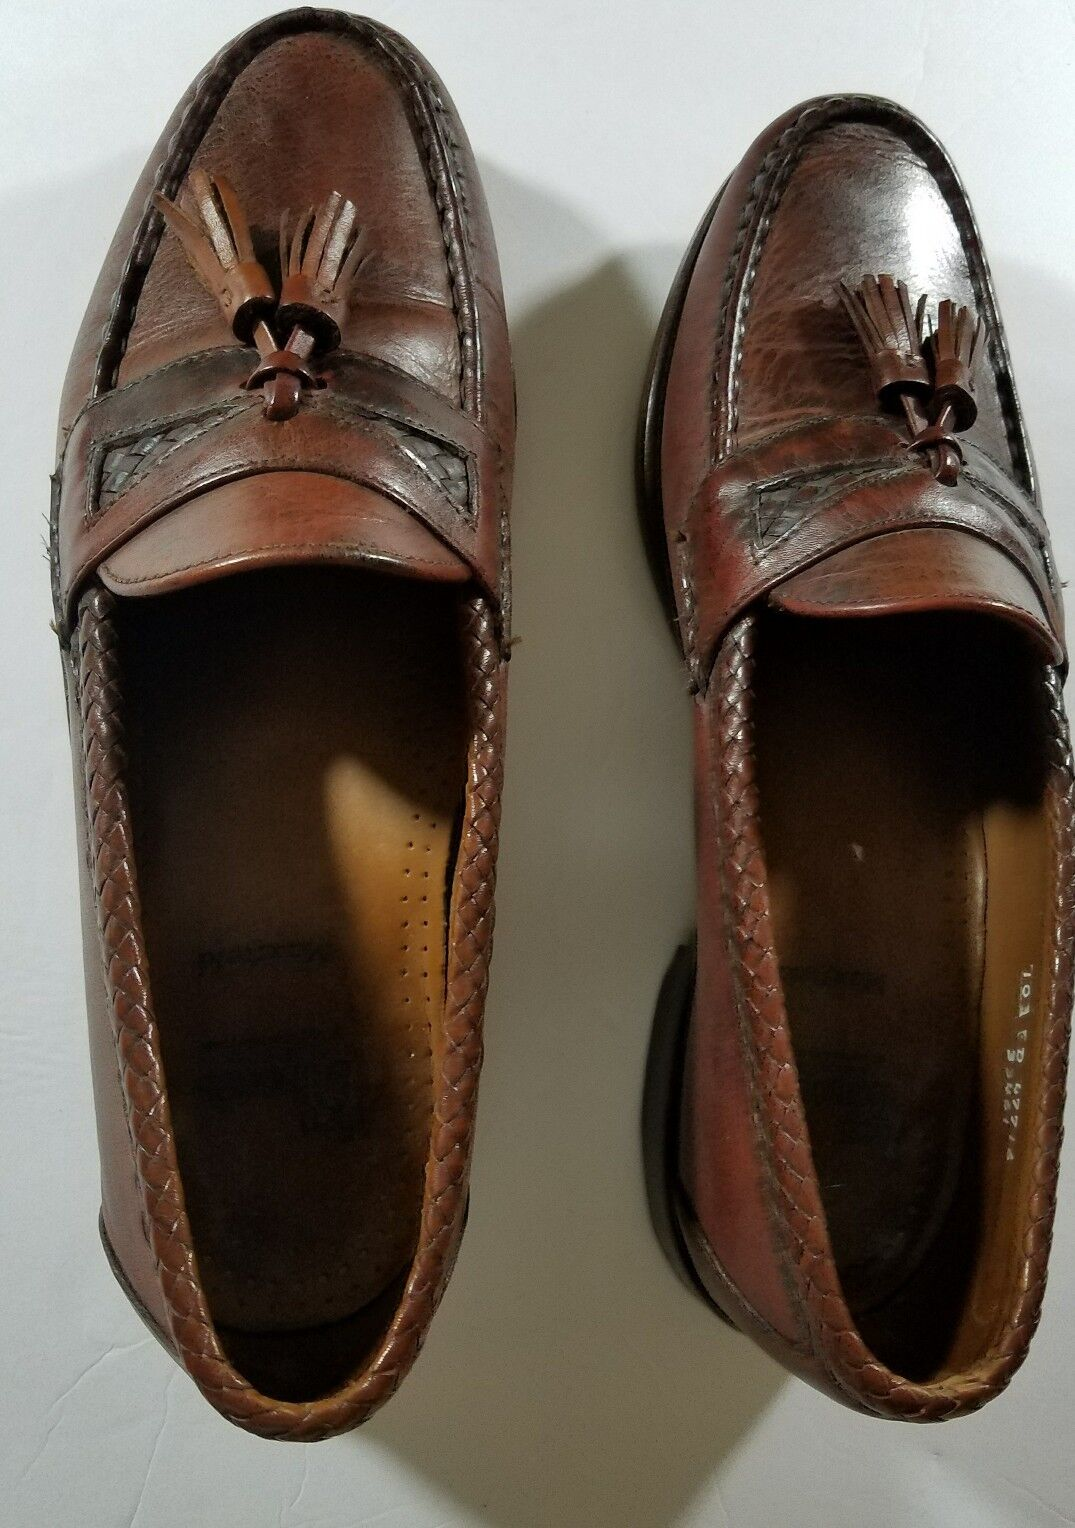 Allen Edmonds Maxfield Tassel new shoes Loafers shoes Brown Men's Size 10 D MEDIUM